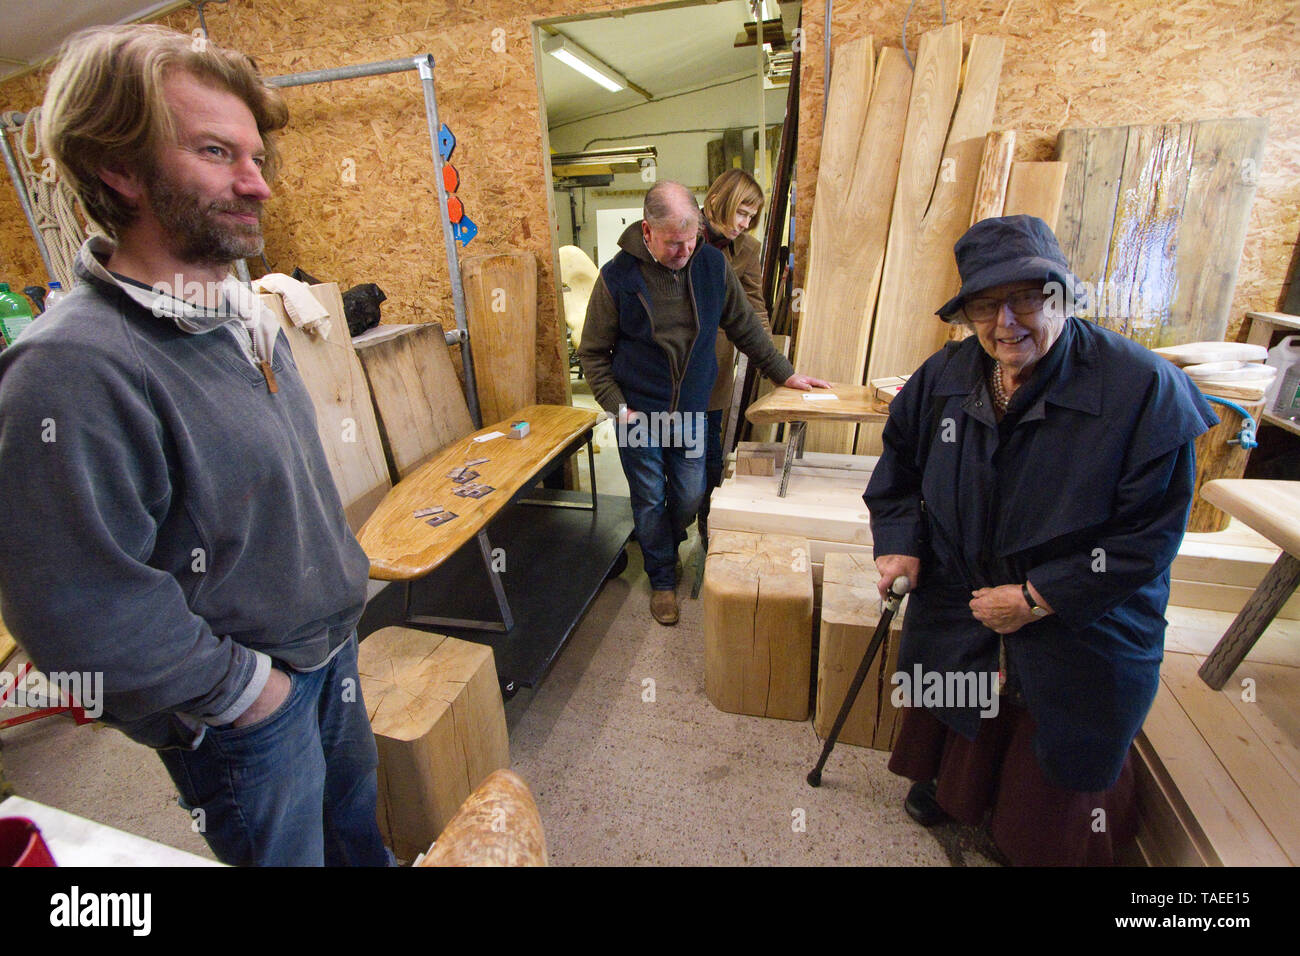 Open day at a carpenter's workshop - Stock Image